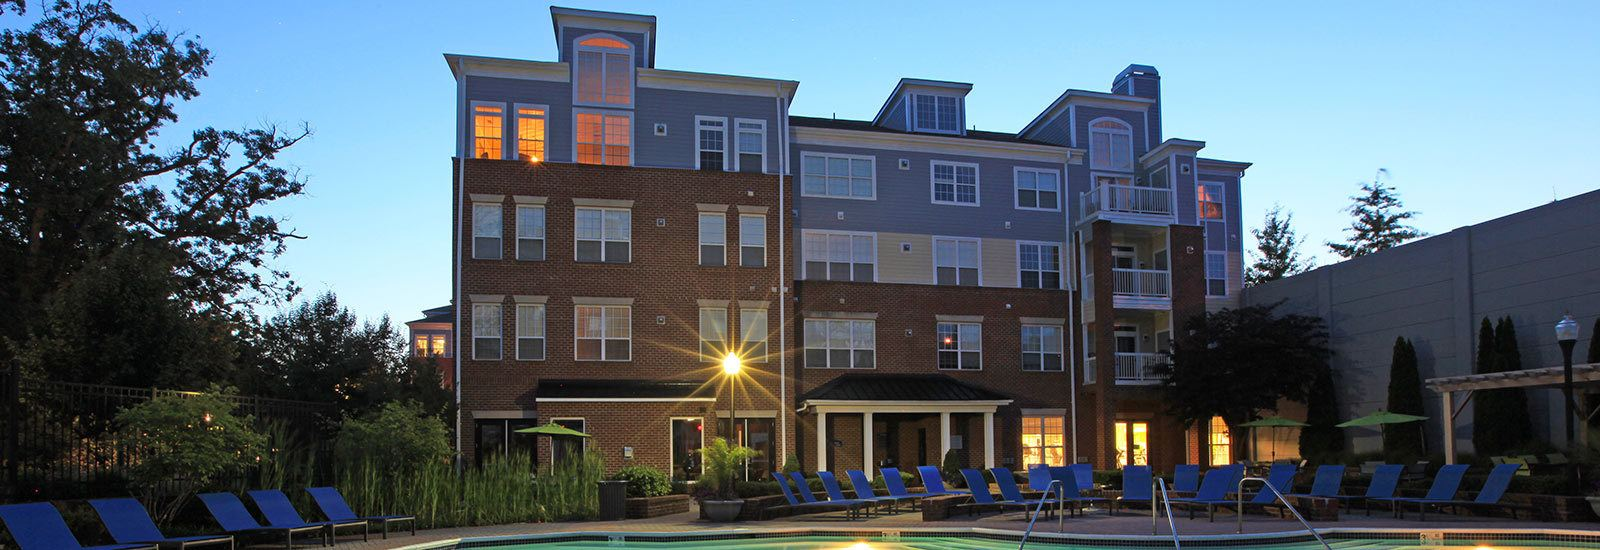 North Bethesda Md Apartments For Rent Berkshires At